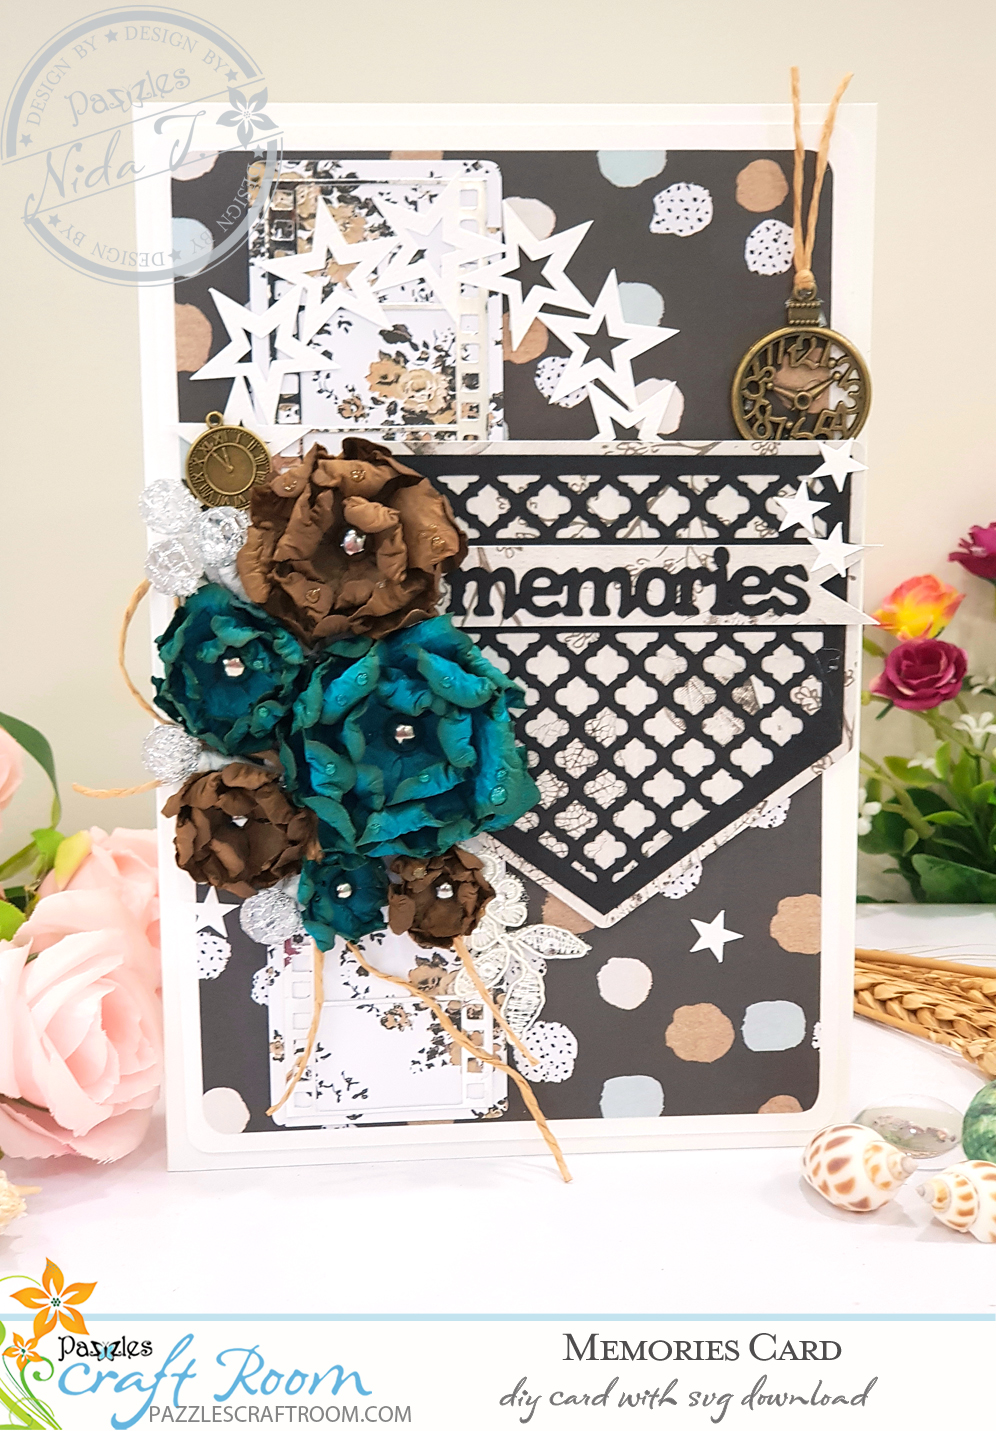 Pazzles DIY Memories Card with instant SVG download. Compatible with all major electronic cutters including Pazzles Inspiration, Cricut, and Silhouette Cameo. Design by Nida Tanweer.